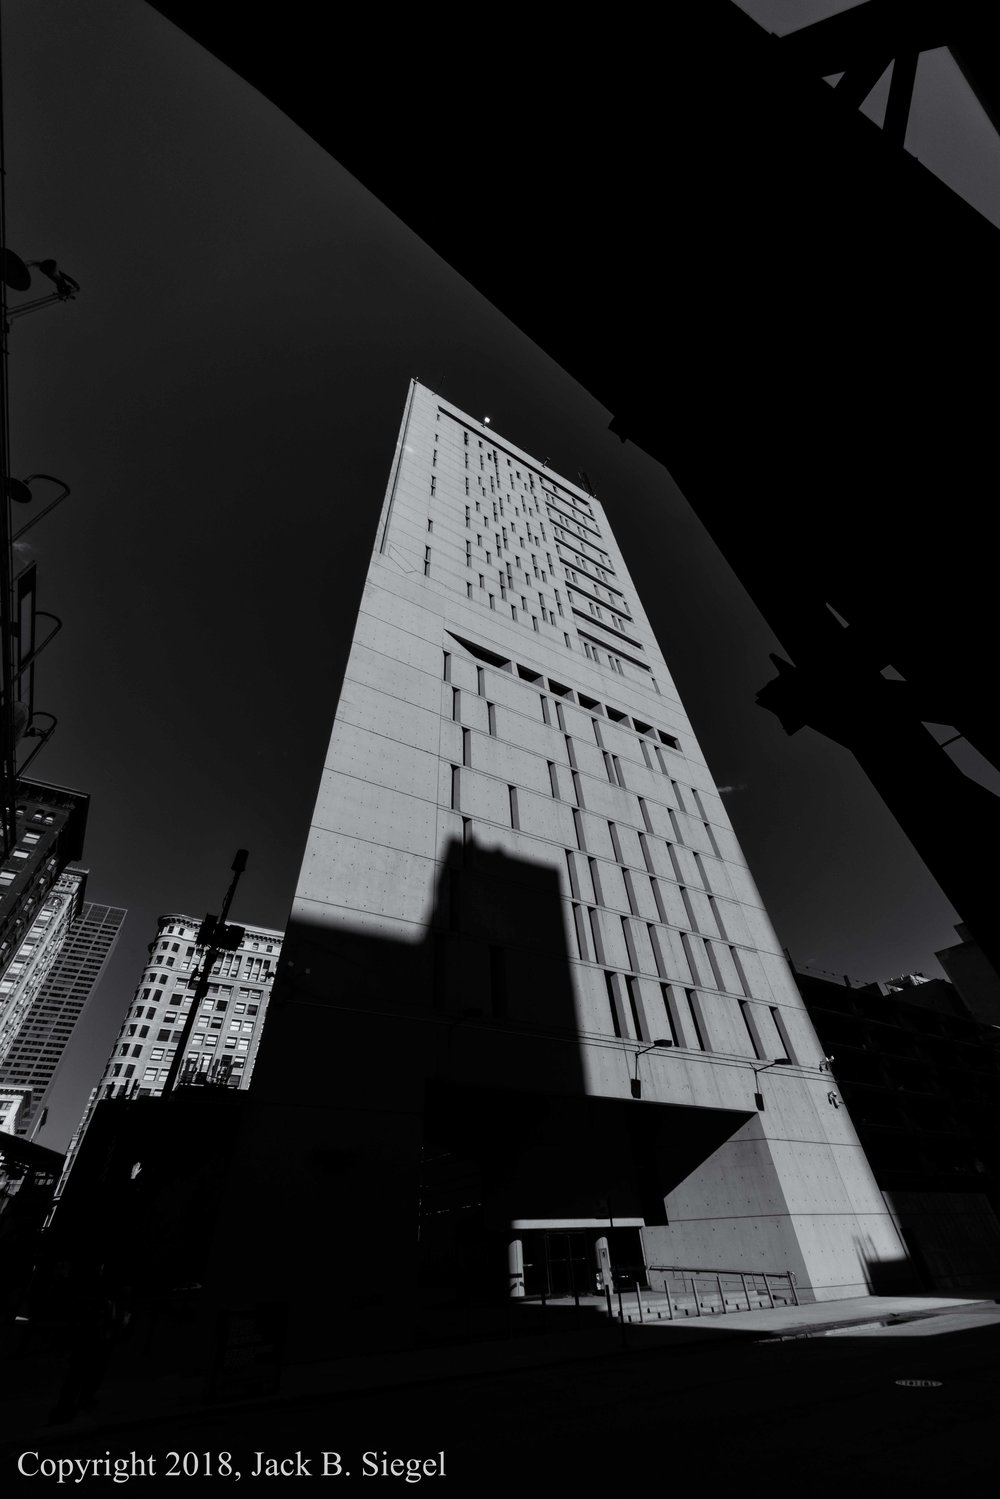 _DS22143PS_PS__Copyright_Brutalism as a Triangle.jpg